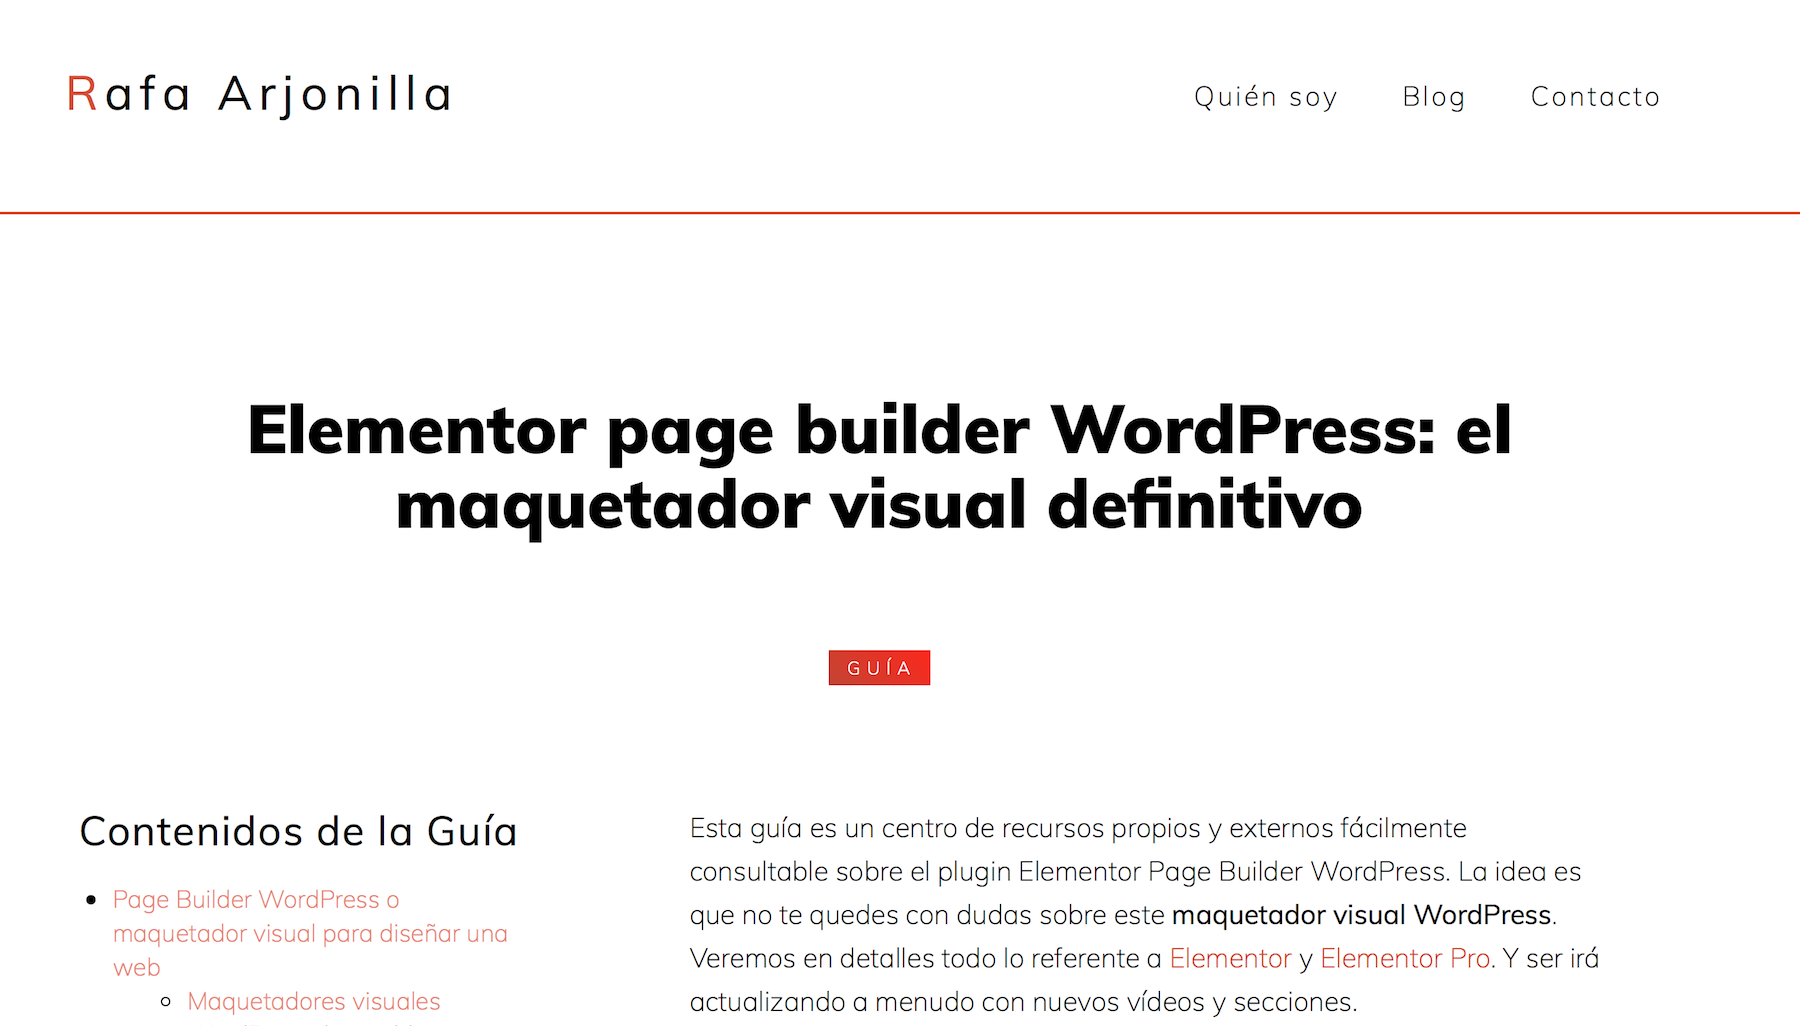 Elementor page builder WordPress: el maquetador visual definitivo (Raja Arjonilla)